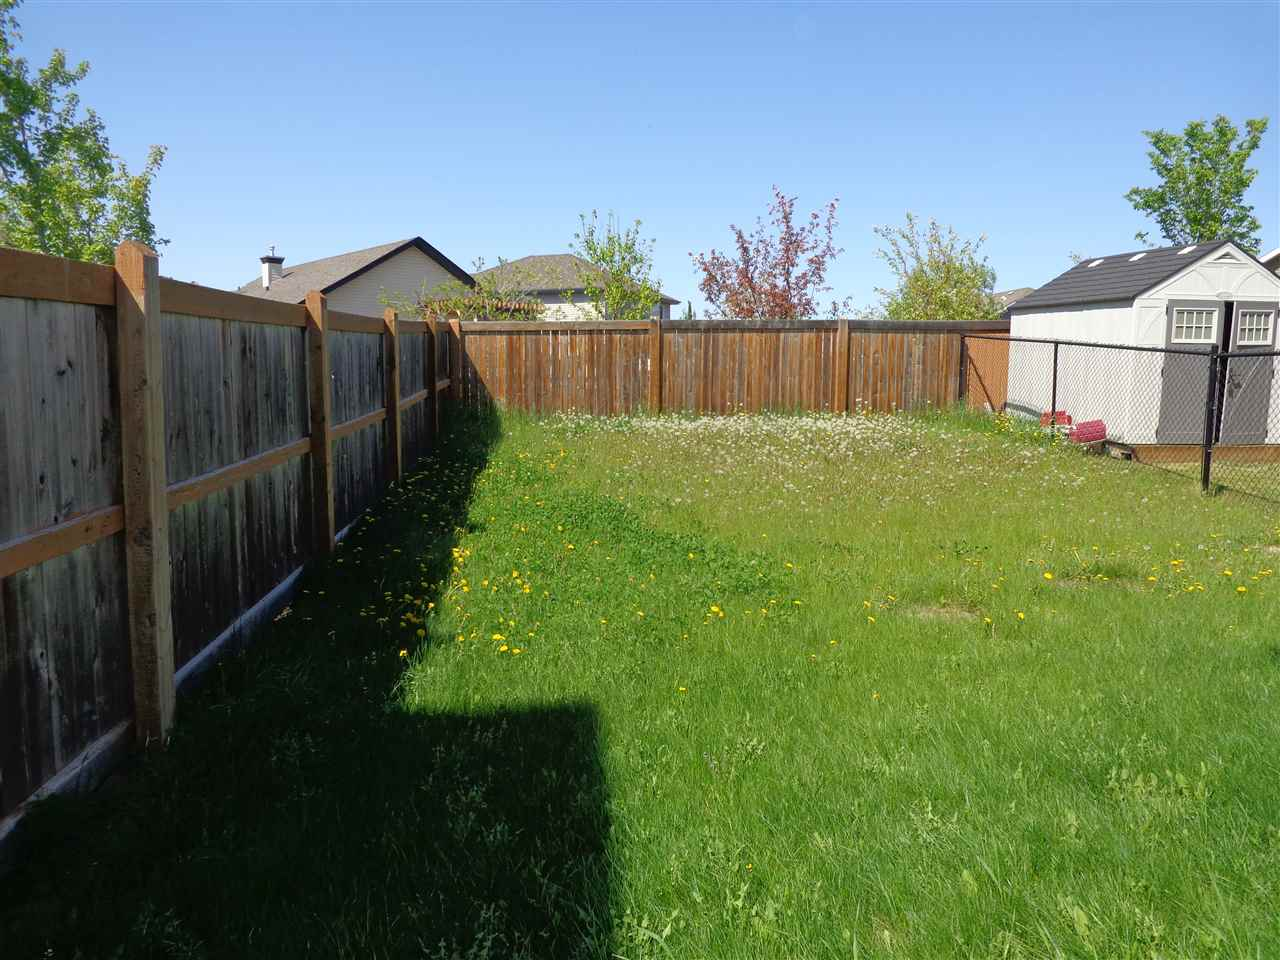 Photo 2: 36 NEVIS CL: St. Albert House Half Duplex for sale : MLS(r) # E4066497